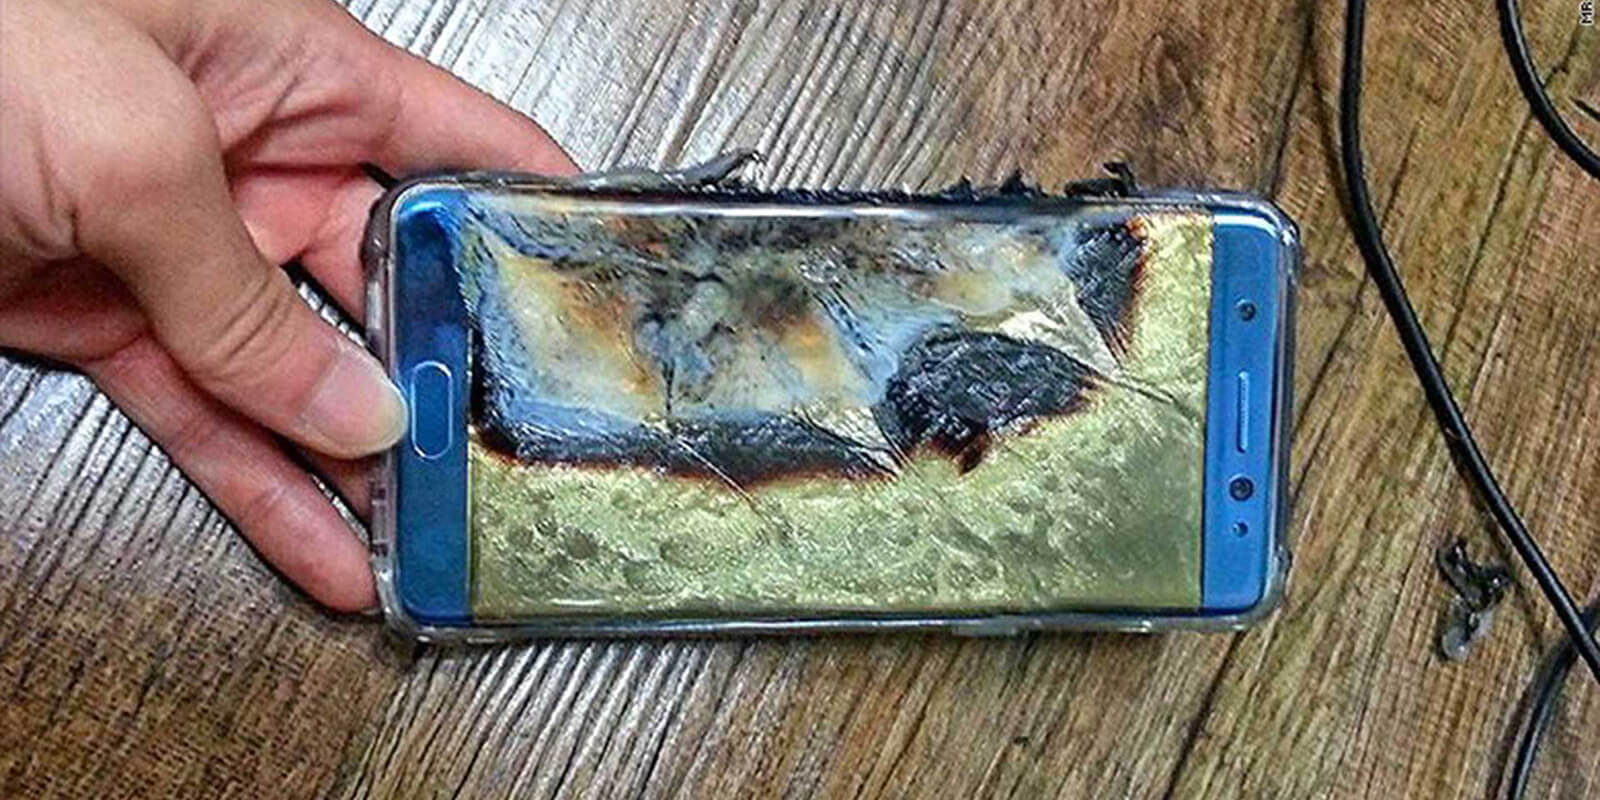 Samsung Galaxy Note 7 Keeps Blowing Up, Company Orders Recall